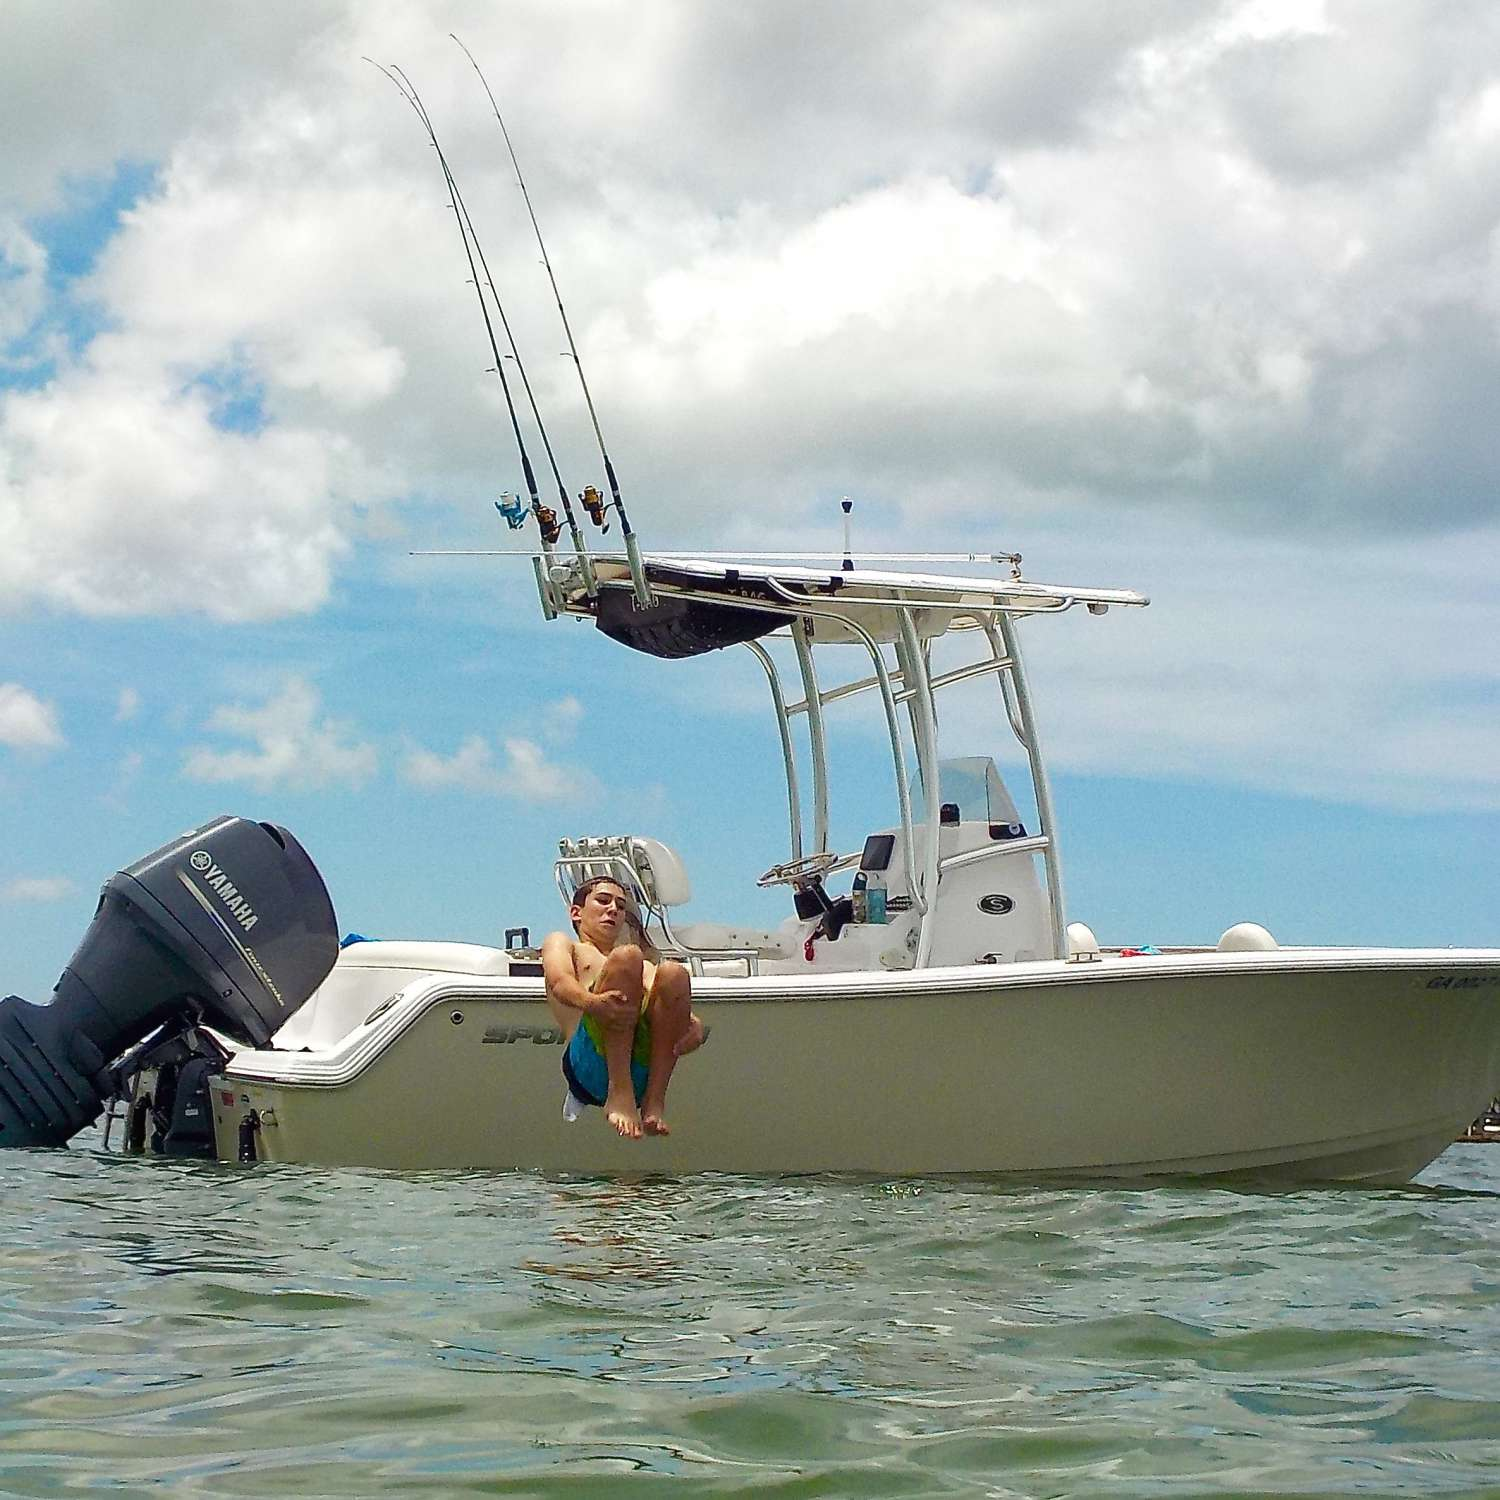 Title: Luke Flip - On board their Sportsman Heritage 211 Center Console - Location: Sarasota, Florida. Participating in the Photo Contest #SportsmanJuly2017